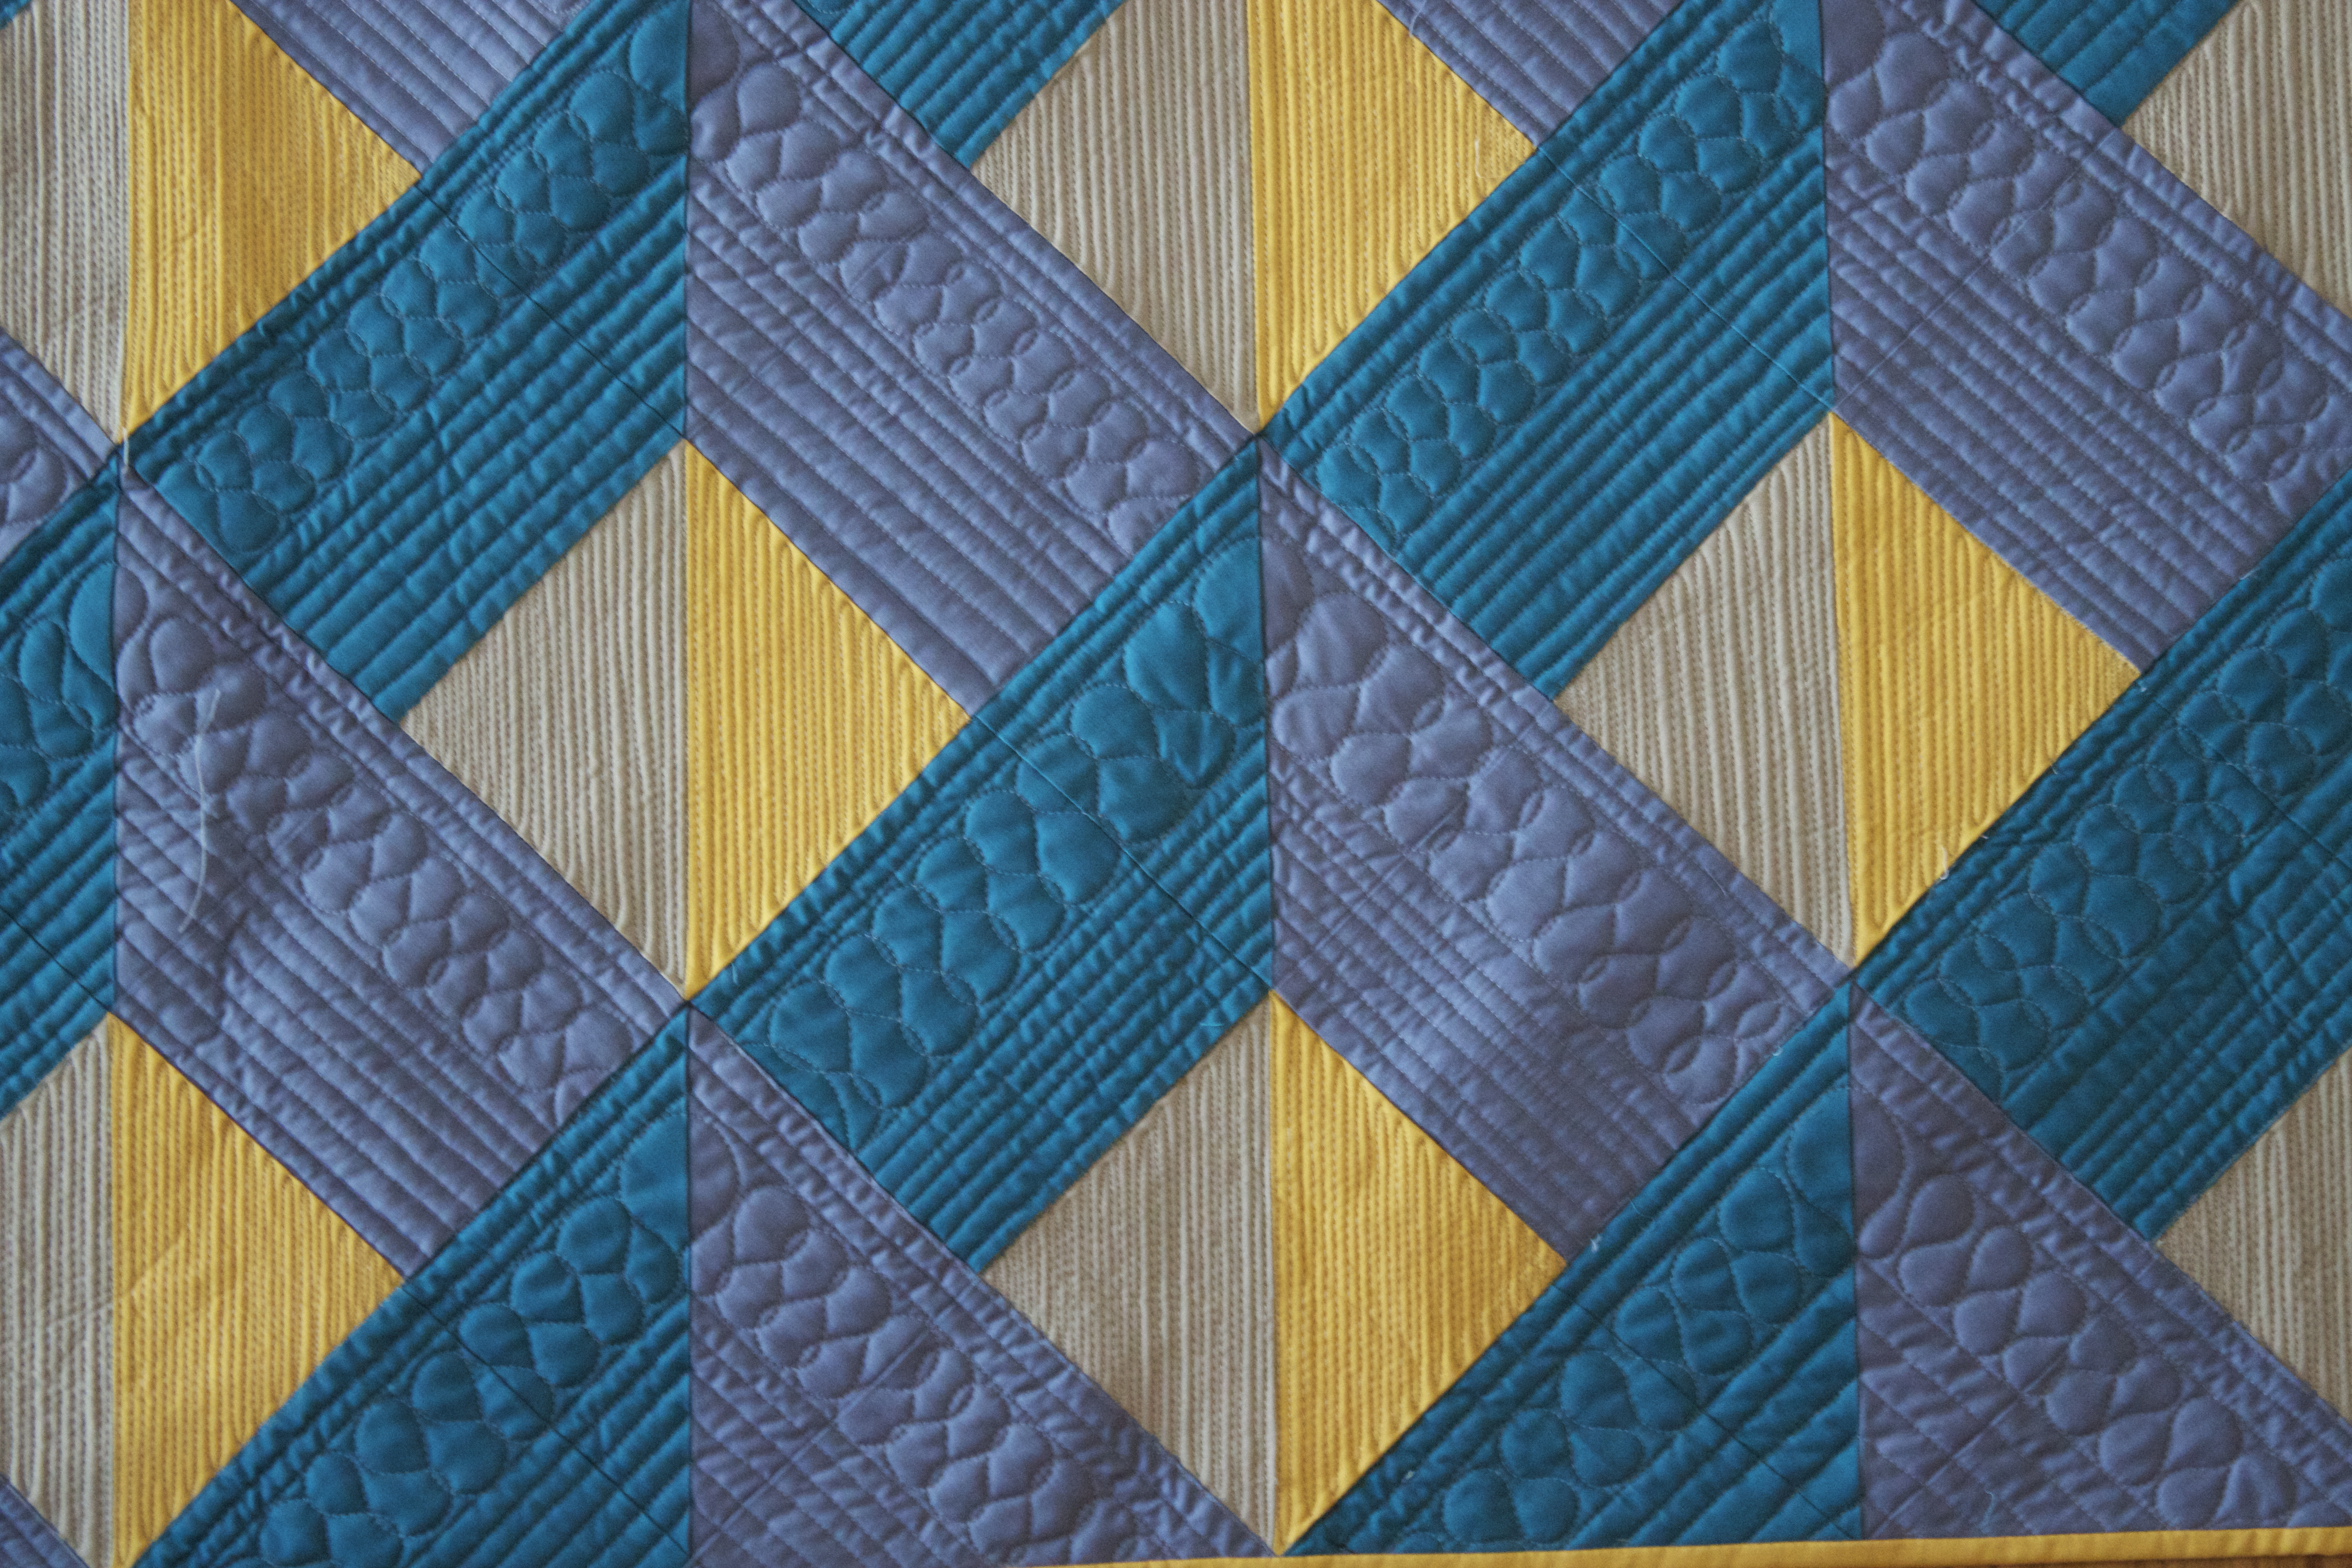 Quilt Pattern Quiltingismytherapy s Blog